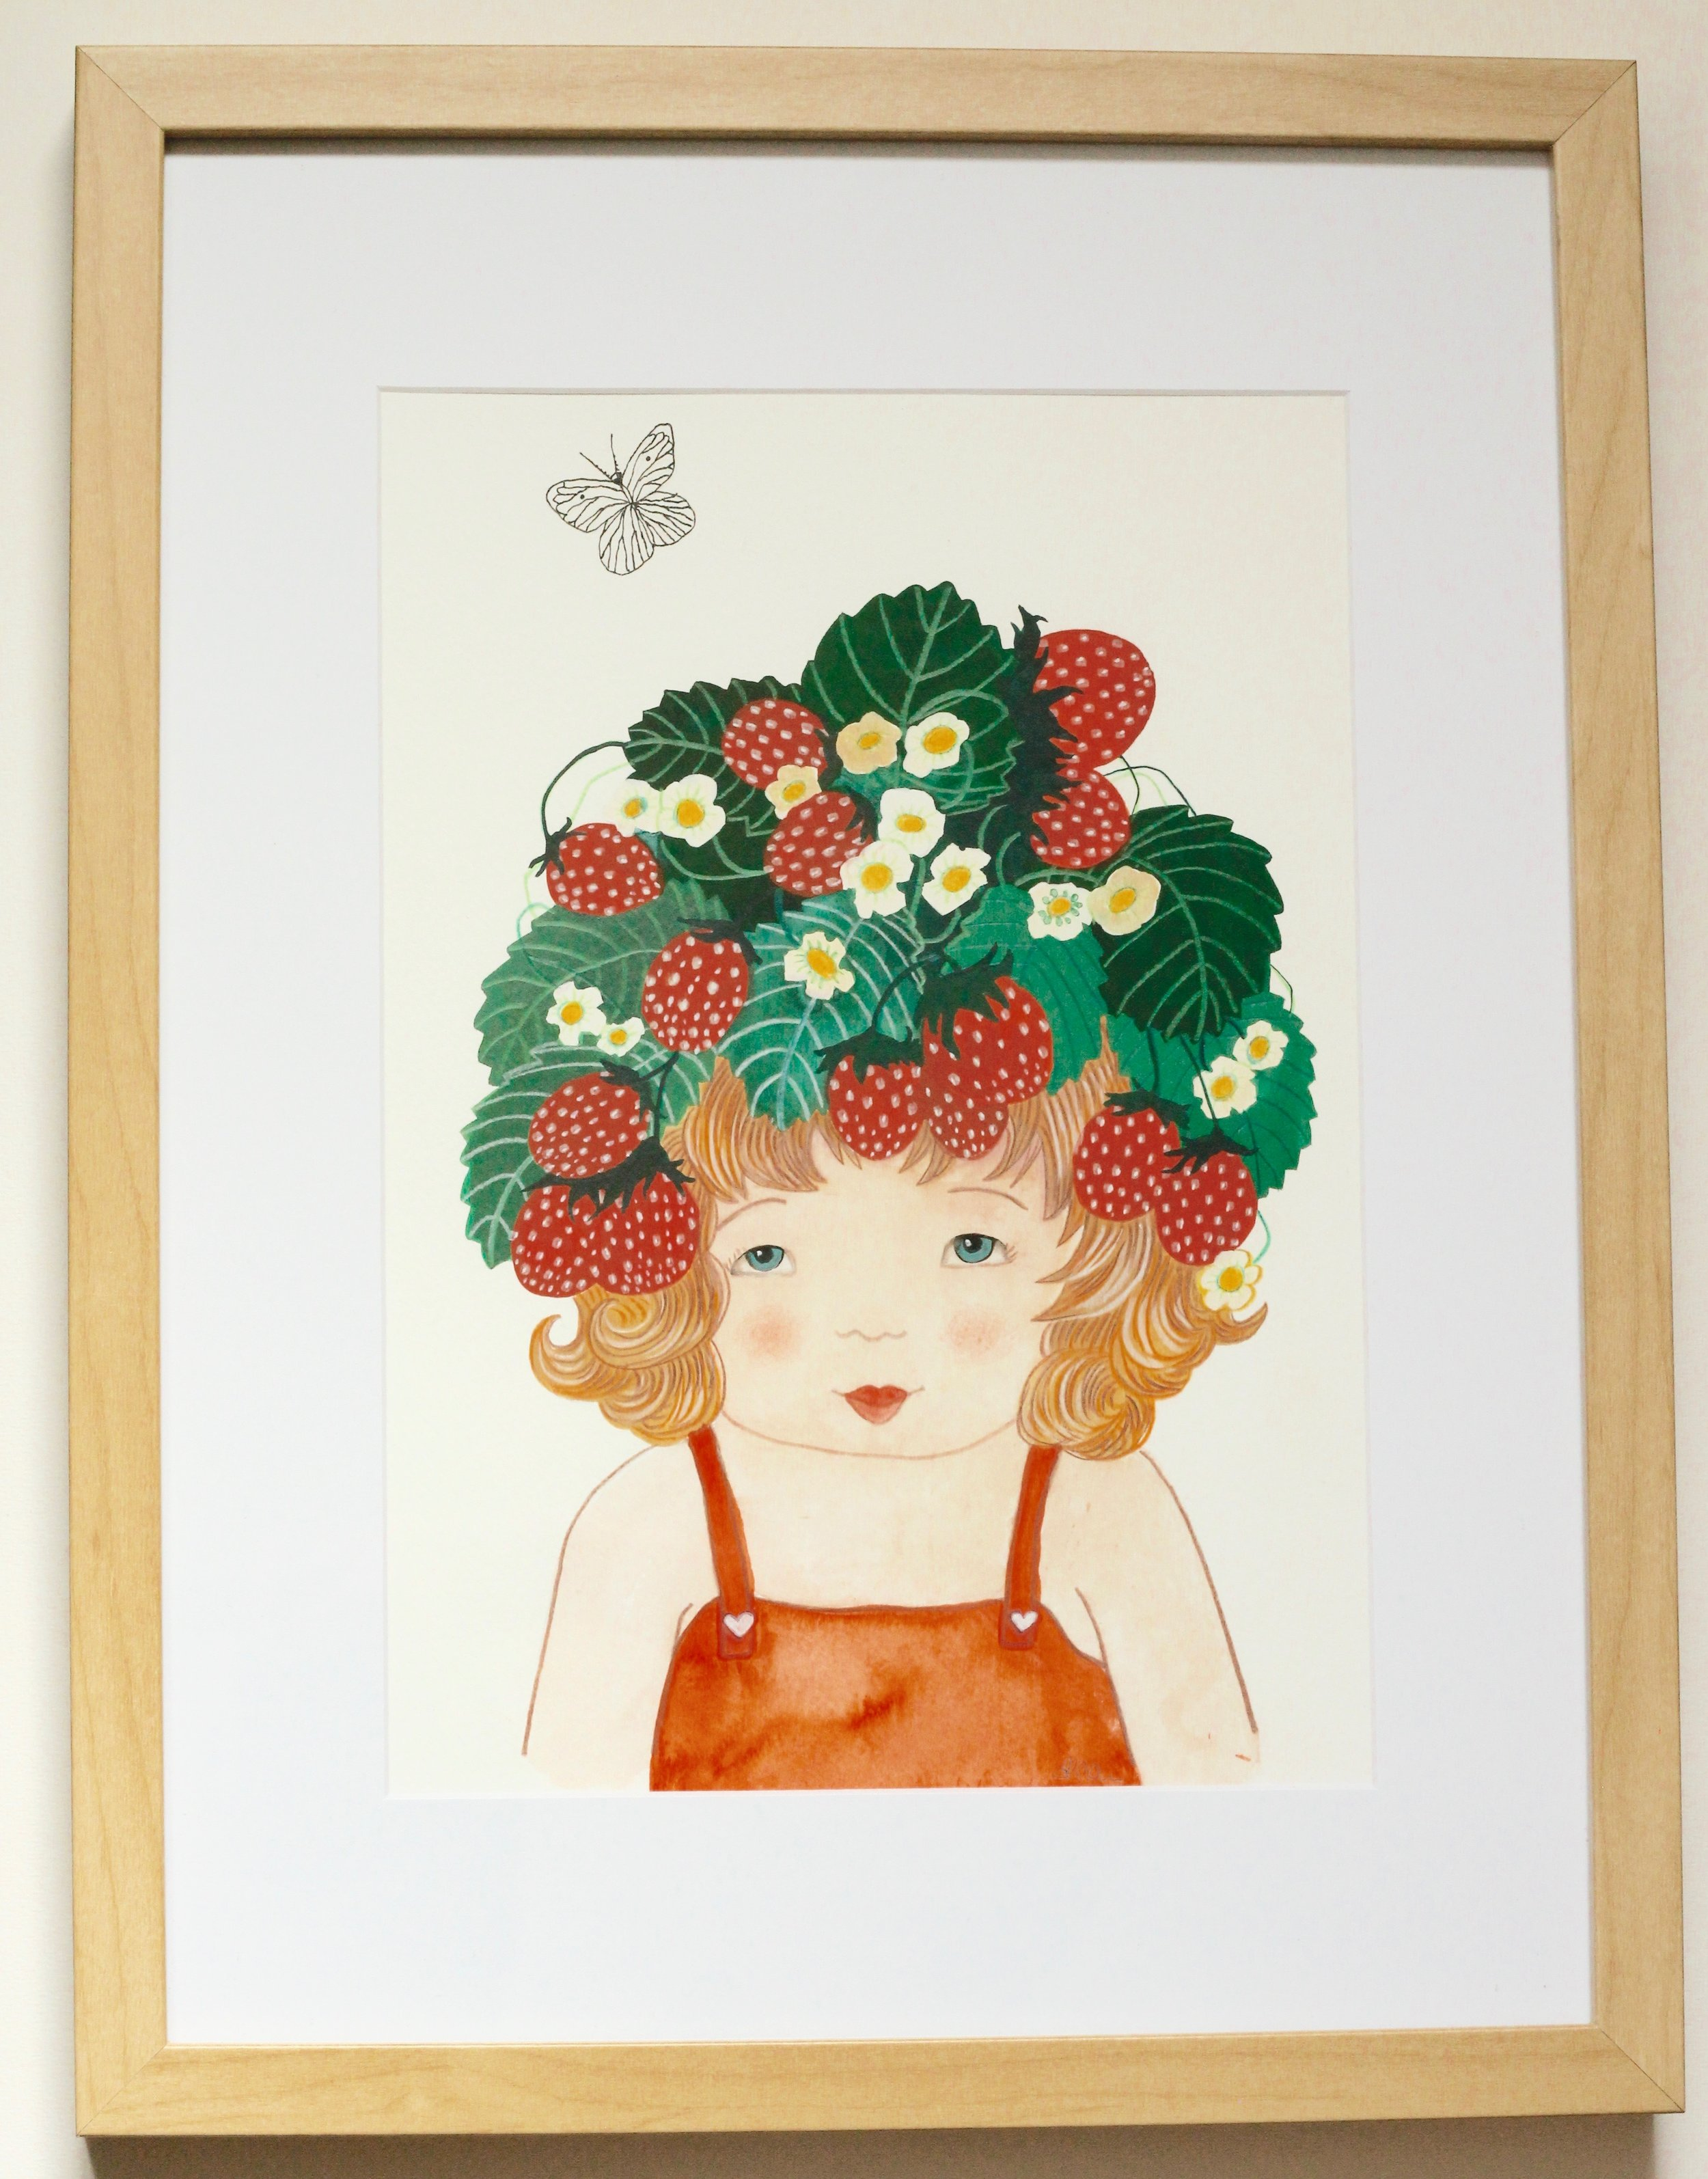 MARA FRAISES DES BOIS - 20x30cm gouache and pencil on paper €120SOLD